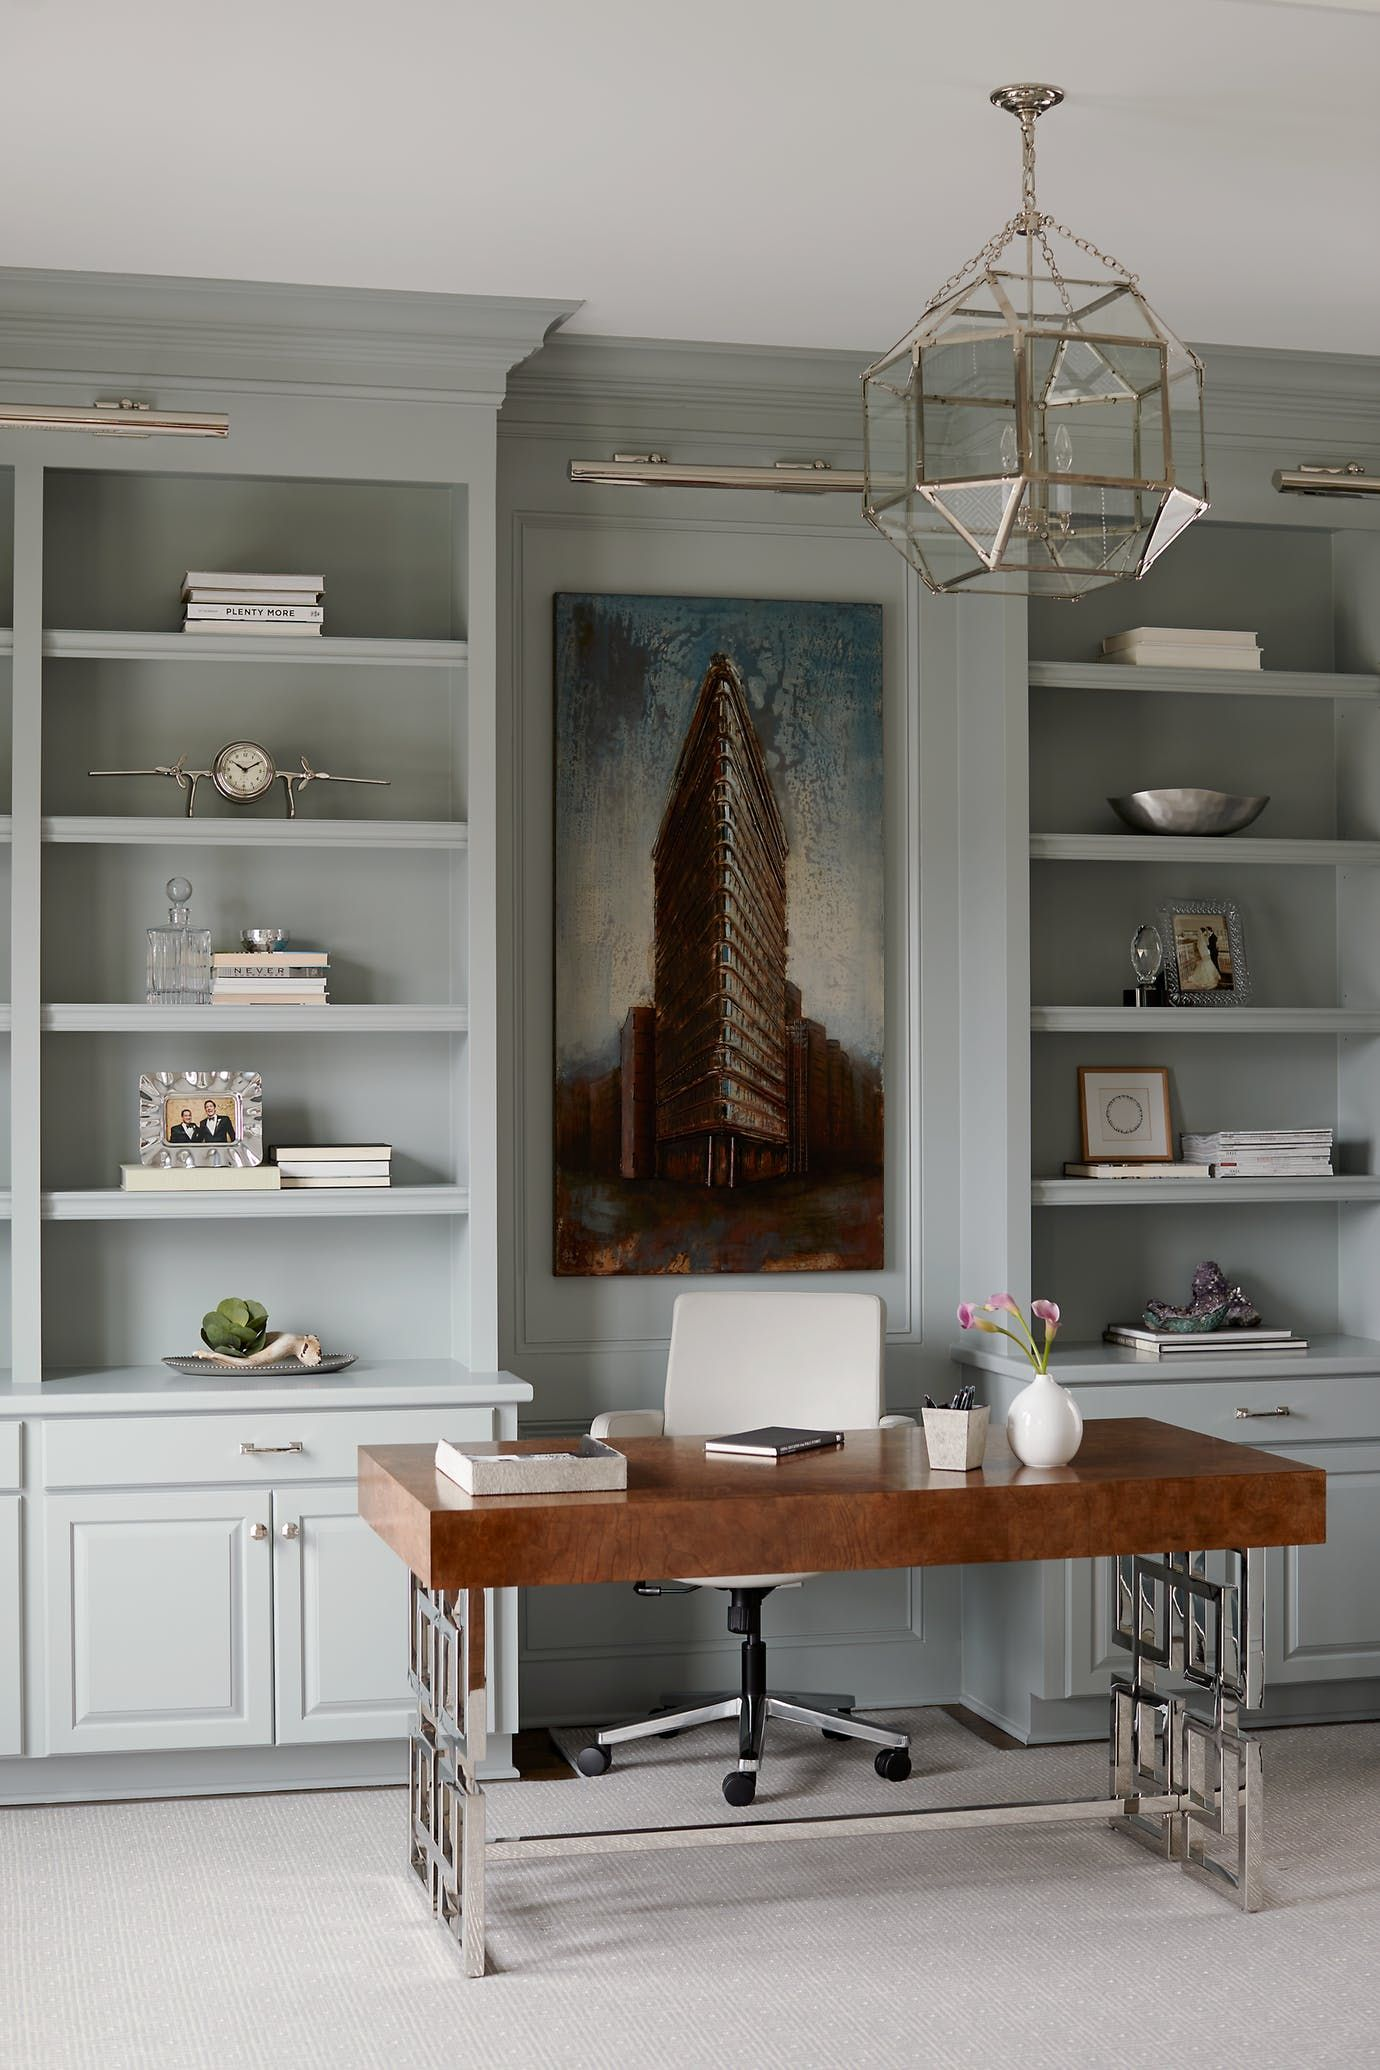 Office with custom bookshelves library home architectural detail details traditionalneoclassical transitional by kara cox interiors also reveal my man pinterest design rh